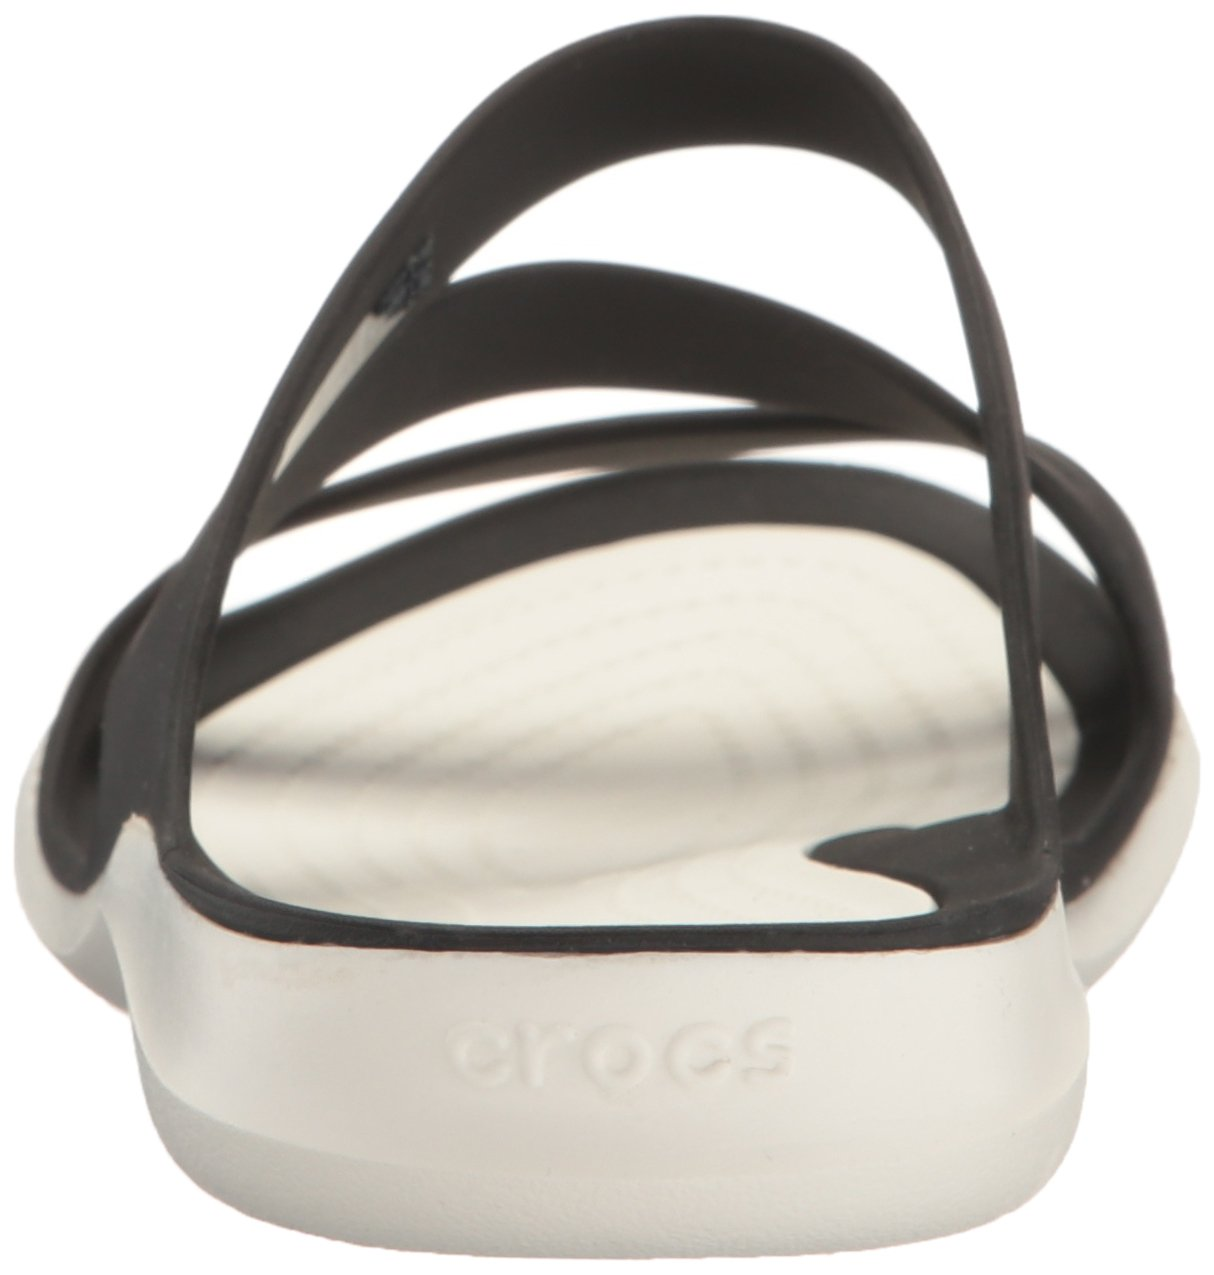 Crocs Women's Swiftwater Sandal B01H70LJVY 10 M US|Black/White